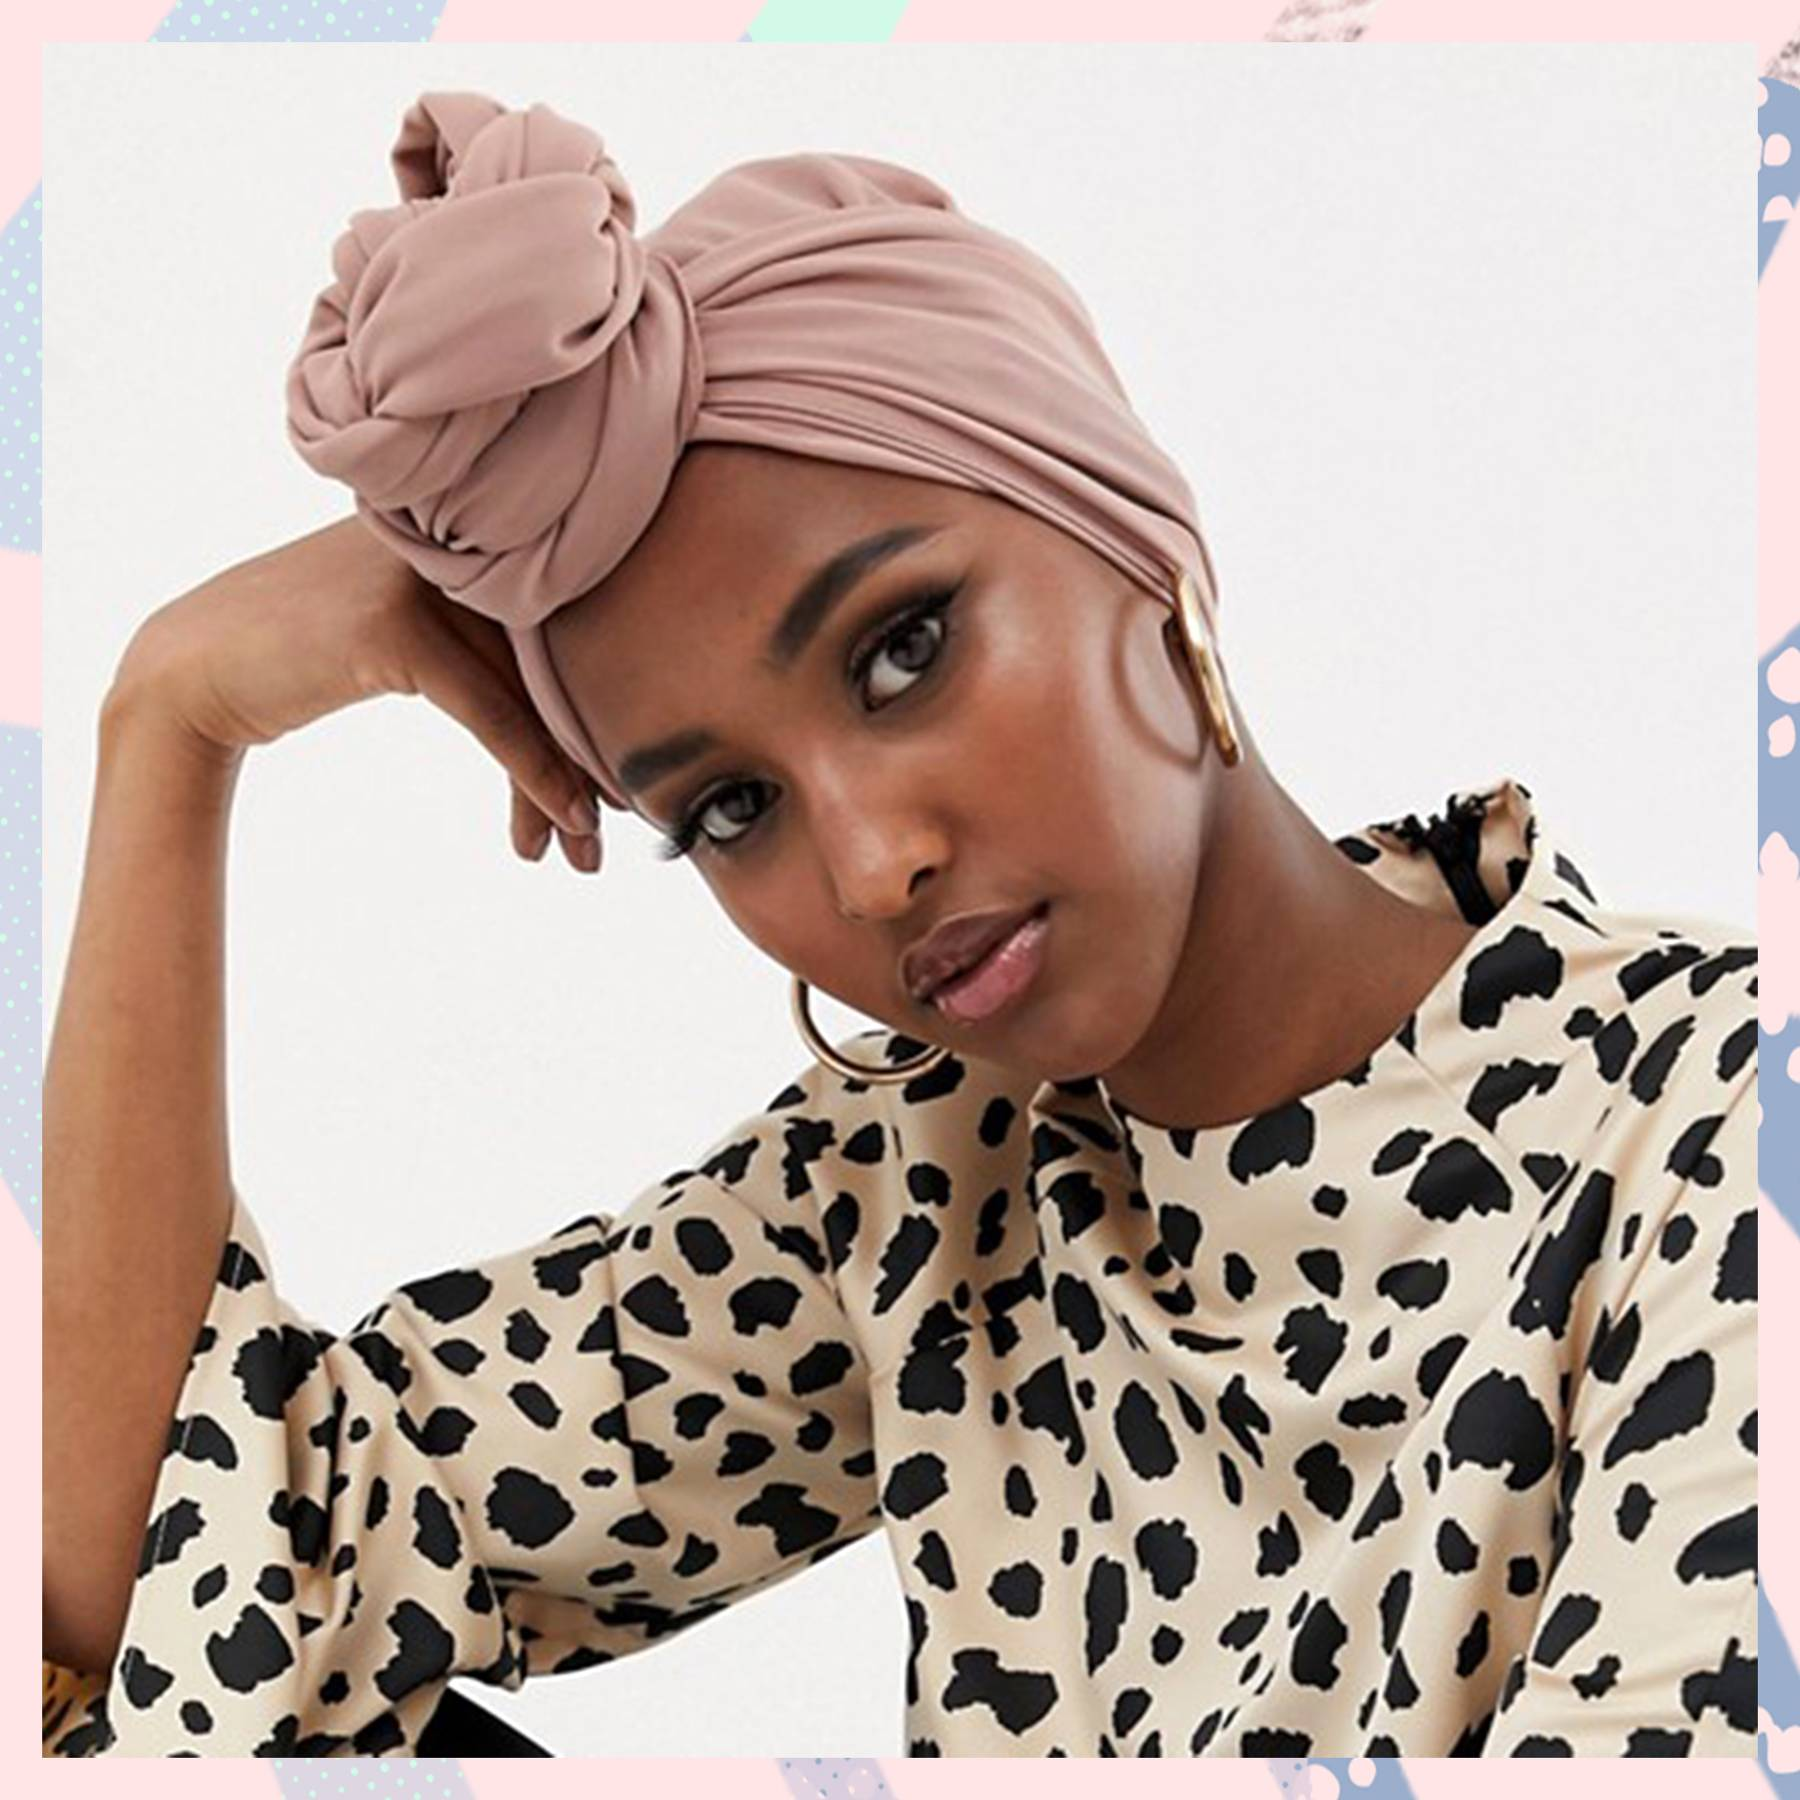 f2df45af1965 A modest fashion brand has launched on asos and we hope it delivers a  message to